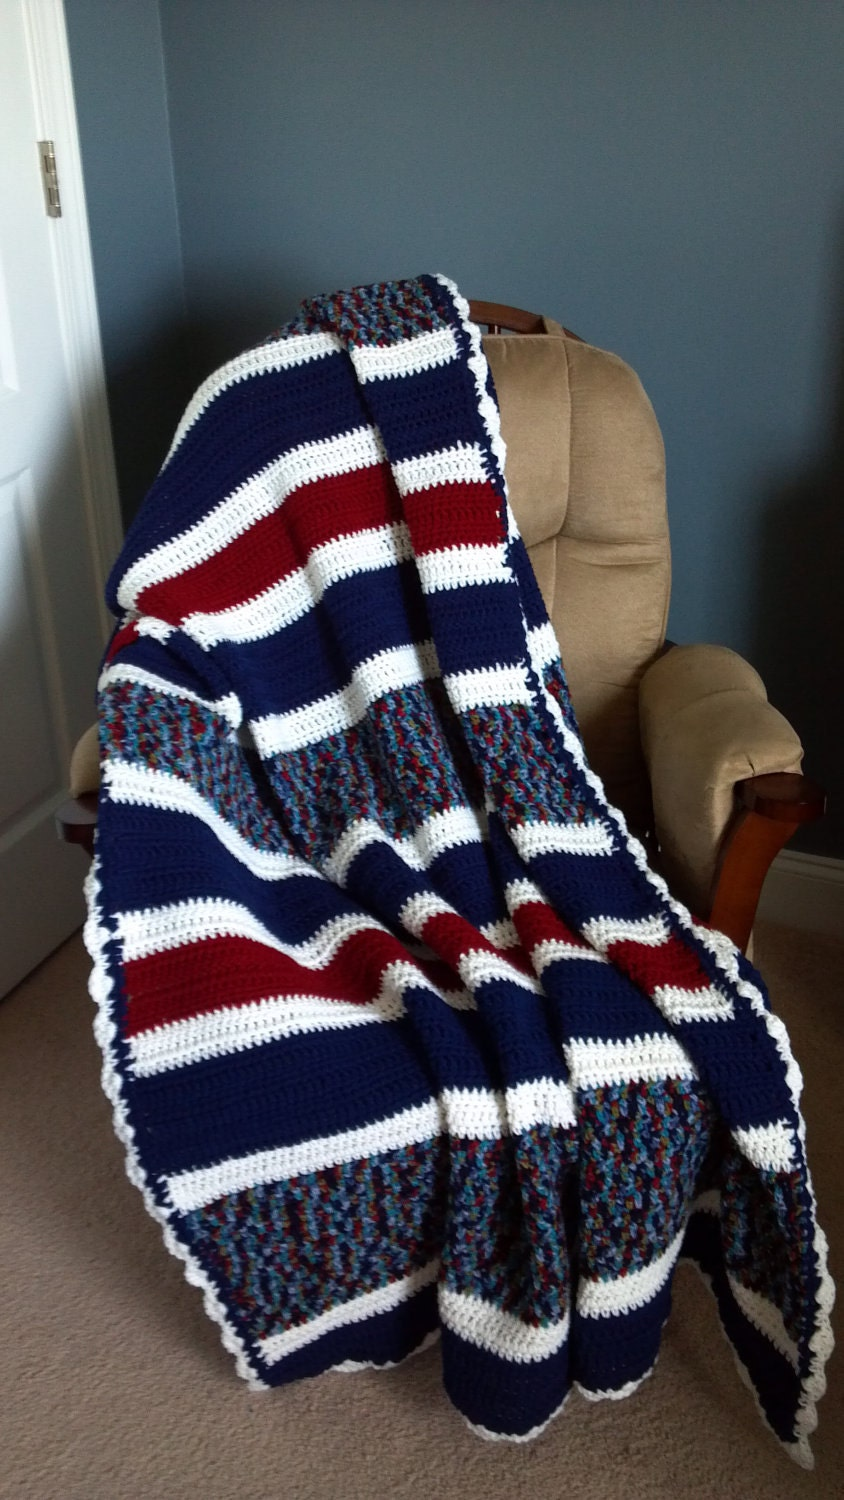 Red White And Blue Crochet Afghan By Snuggablestitches On Etsy